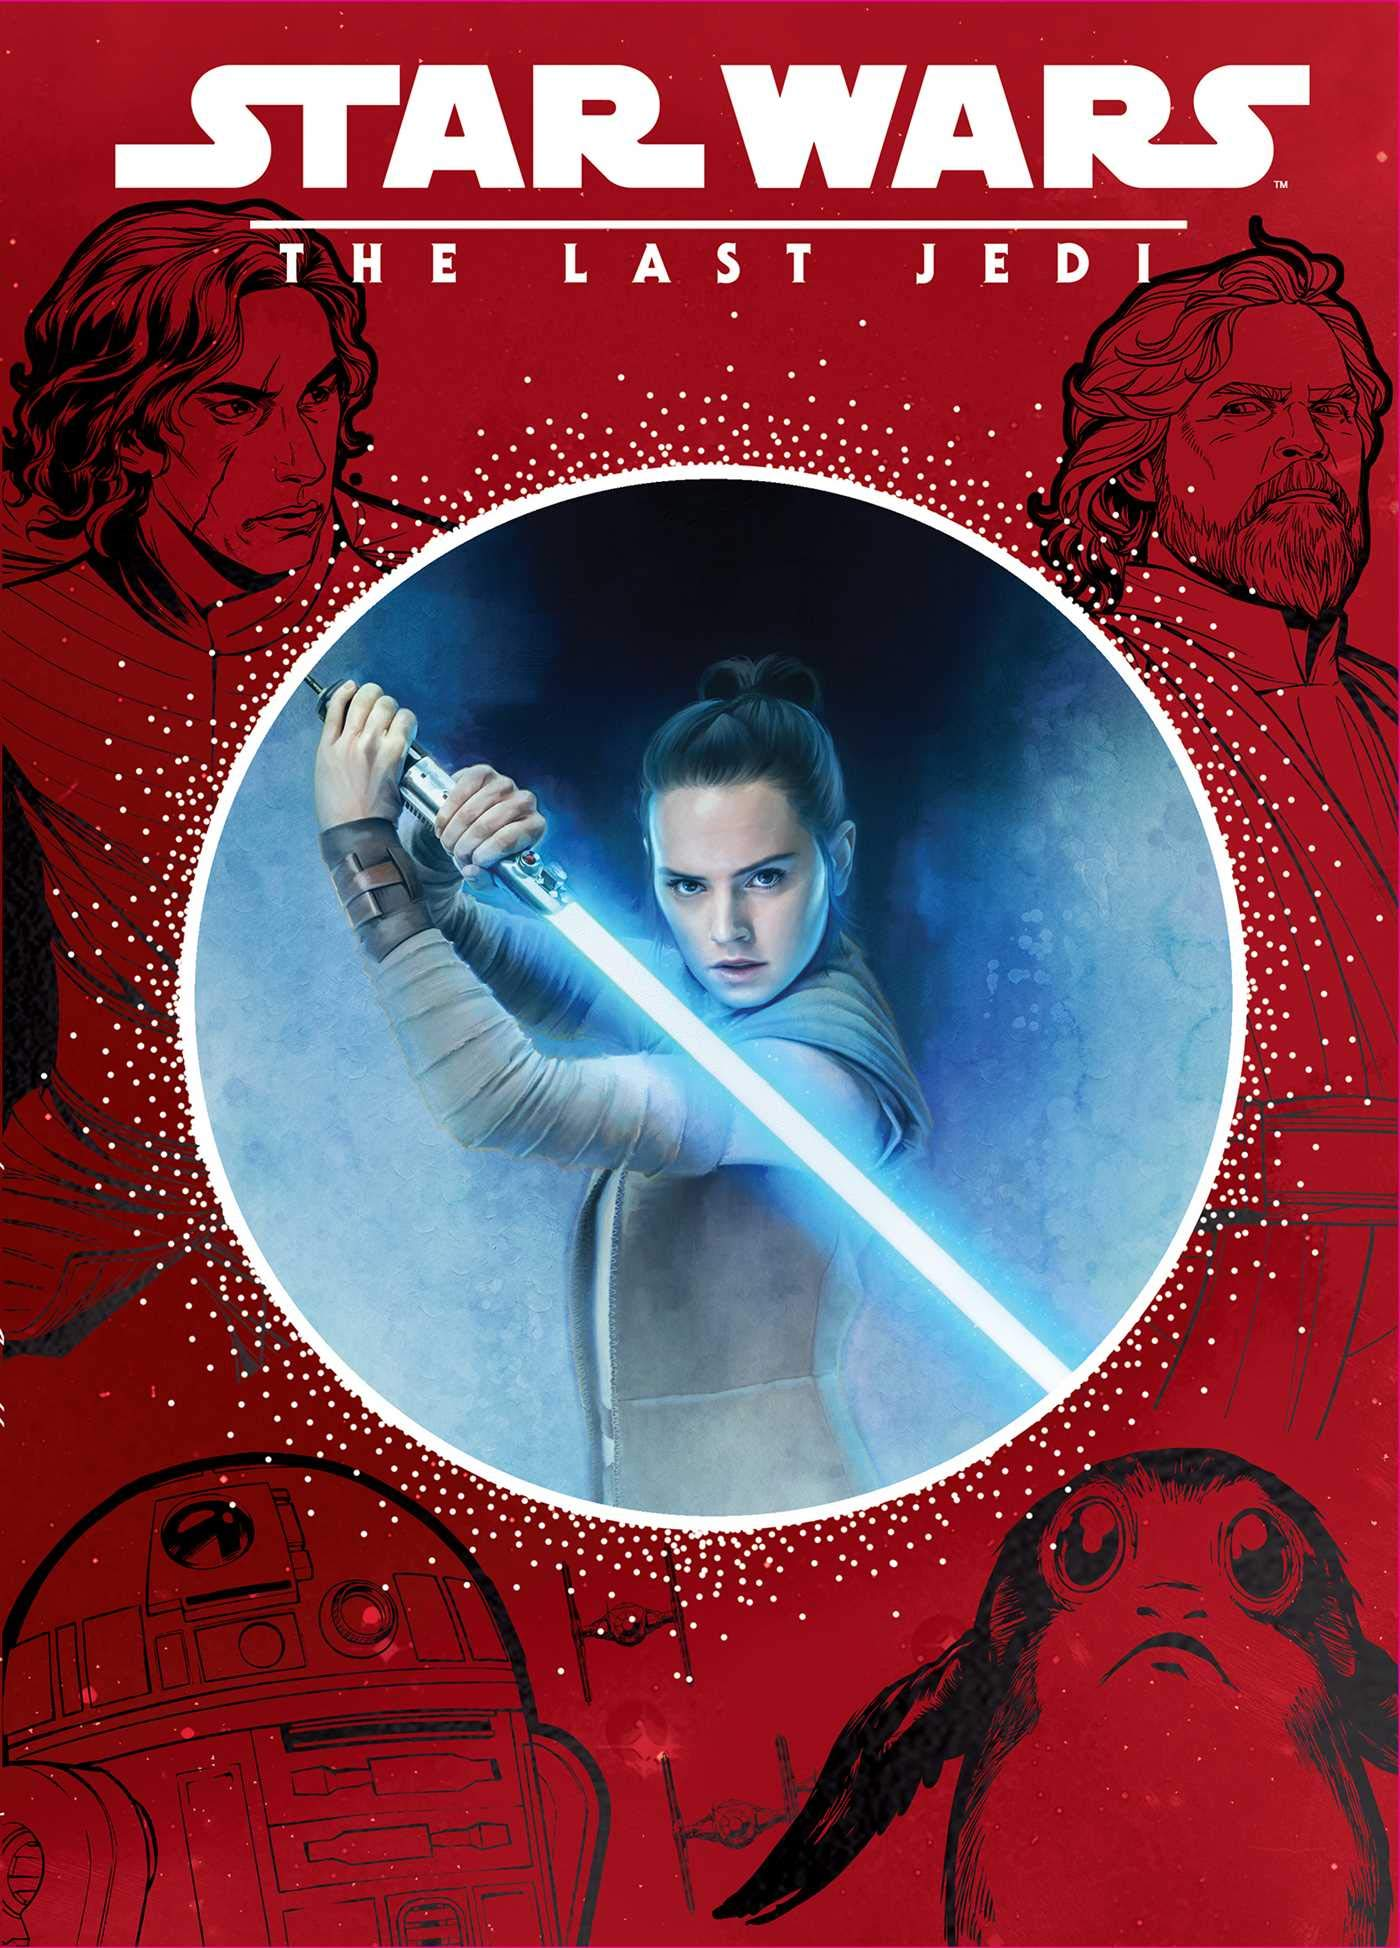 The Last Jedi - Disney Die-Cut Classics (09.02.2021)